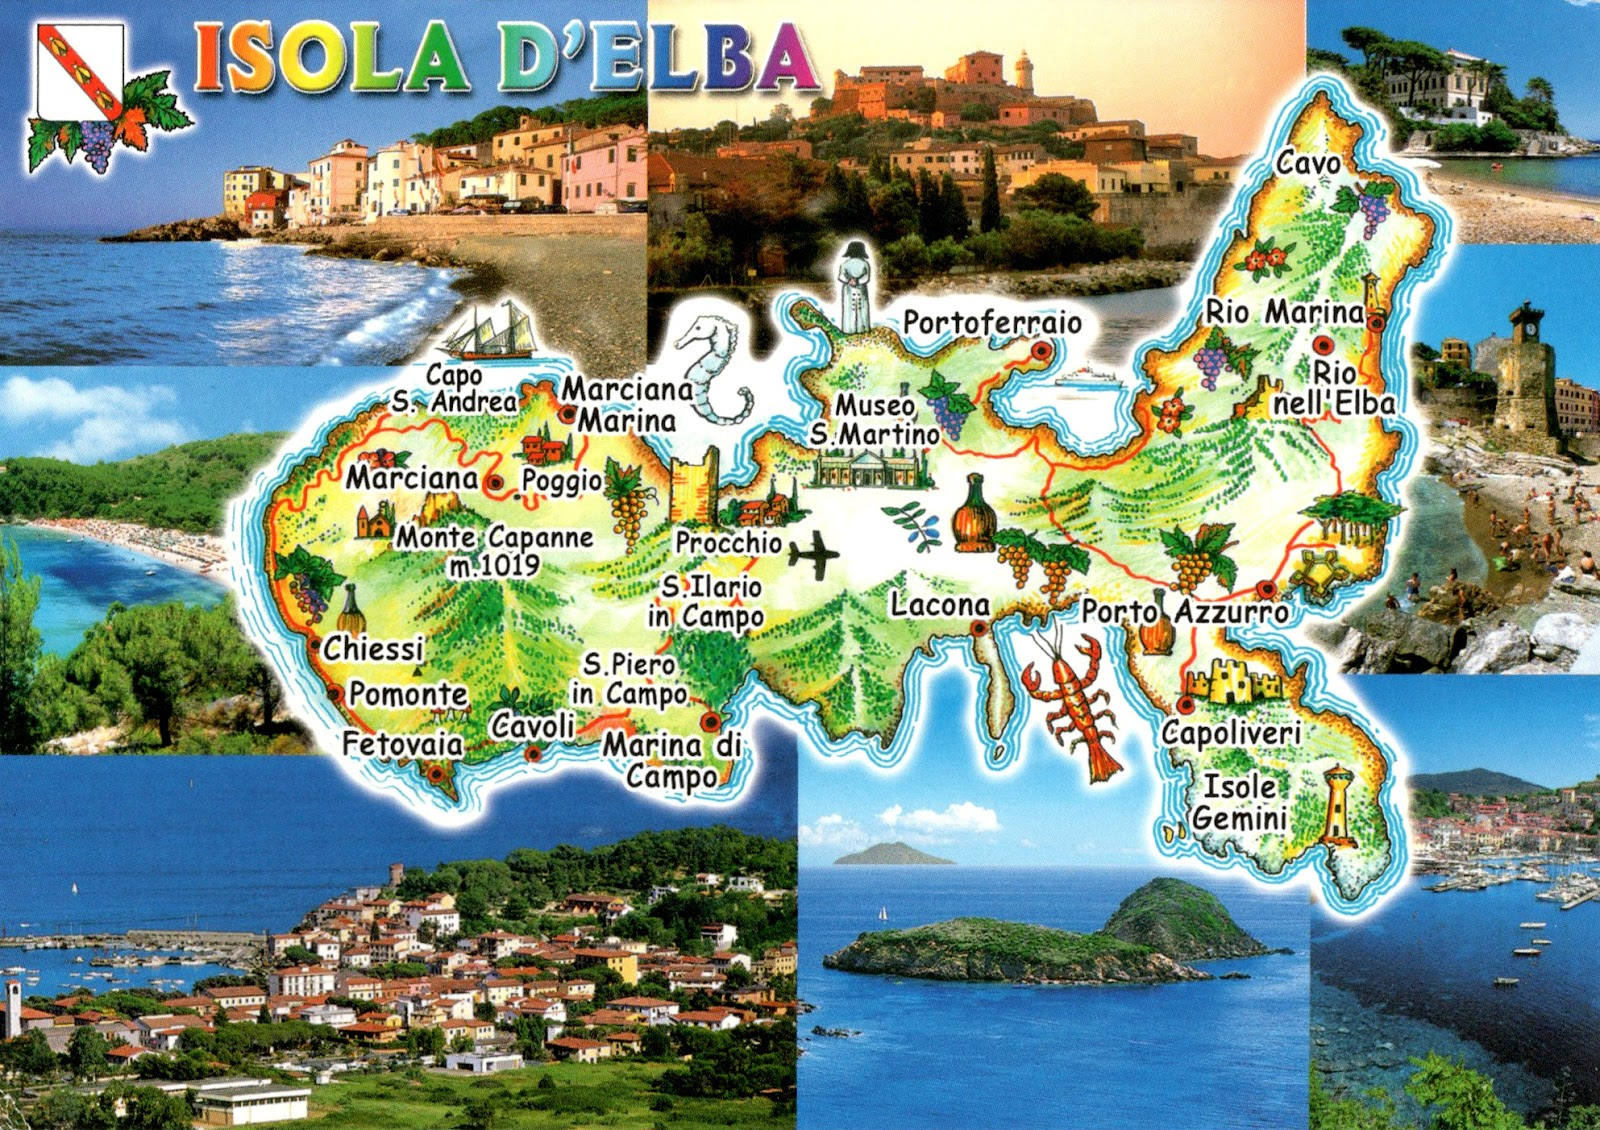 WORLD, COME TO MY HOME!: 2141 ITALY (Tuscany) - The map of Elba